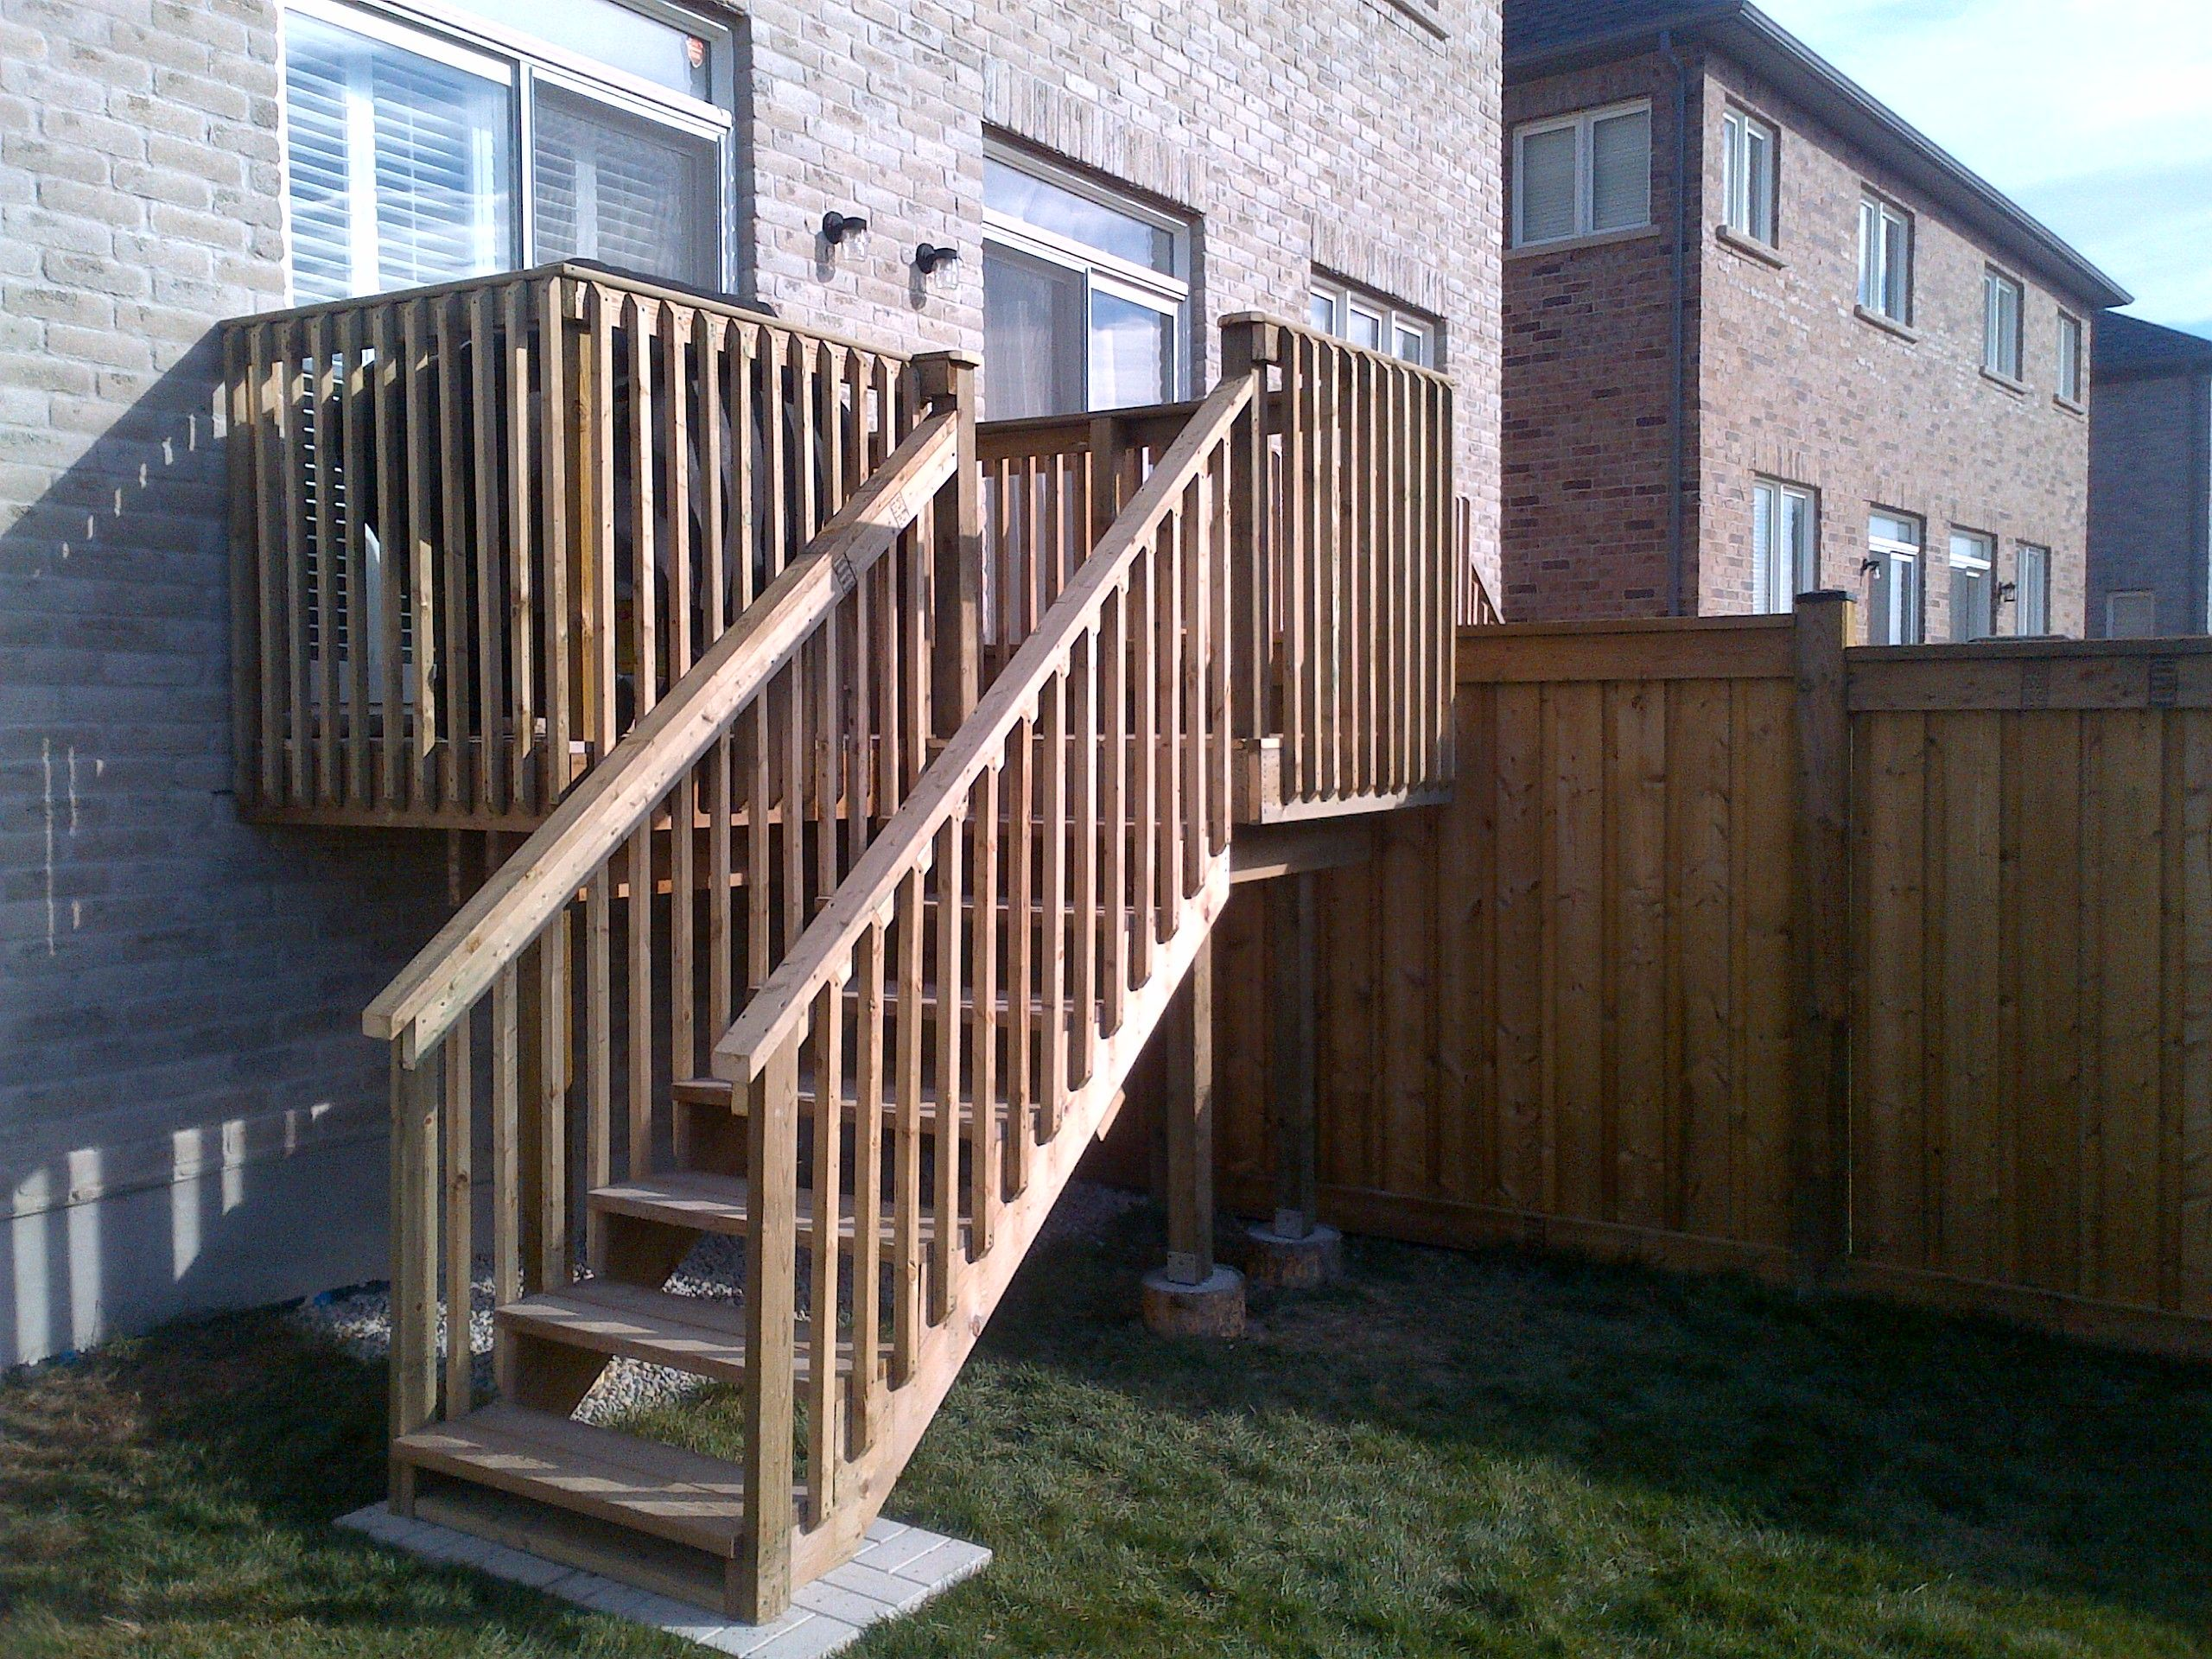 Pressure Treated Deck And Fence Outdoor Stair Railing Stair